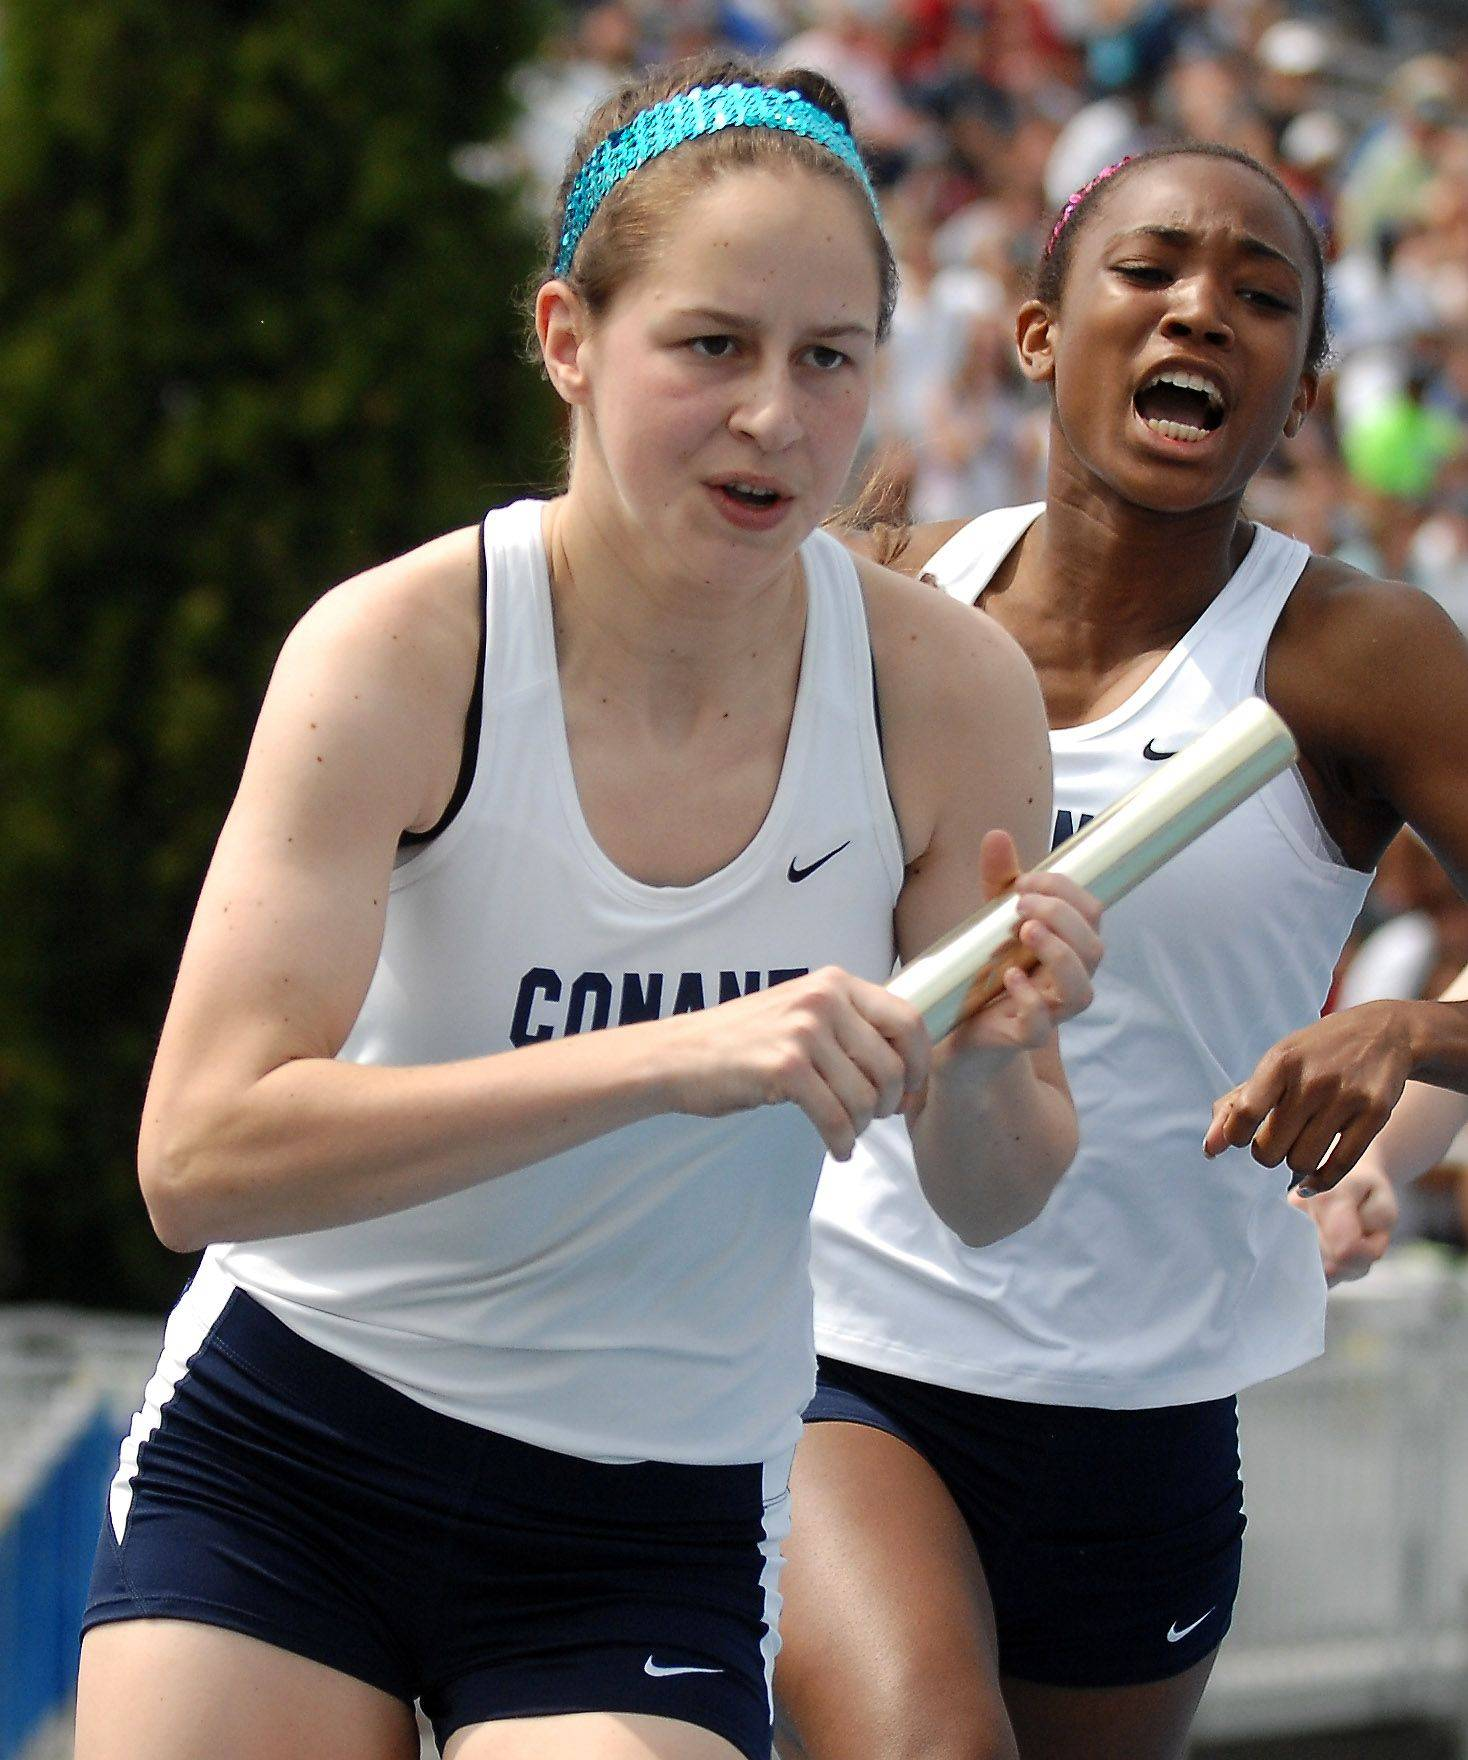 Conant's Tina Tortorici takes the baton from Maya Lane in the 4x200-meter relay in Charleston.